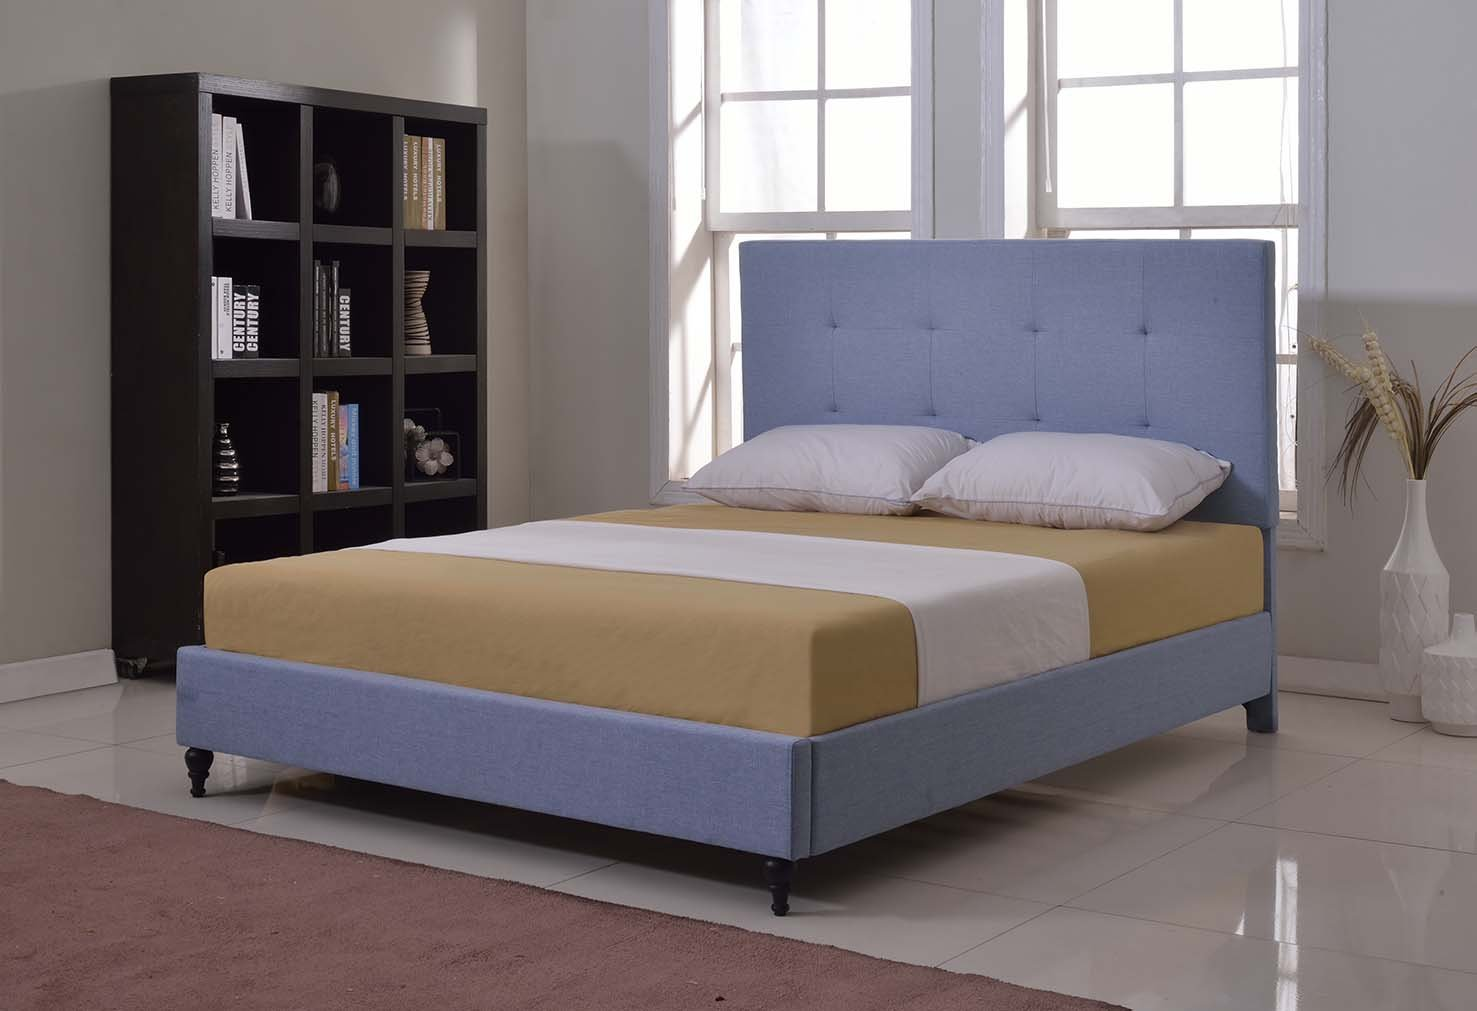 Home Life Cloth Light Blue Linen 47'' Tall Headboard Platform Bed with Slats Queen - Complete Bed 5 Year Warranty Included